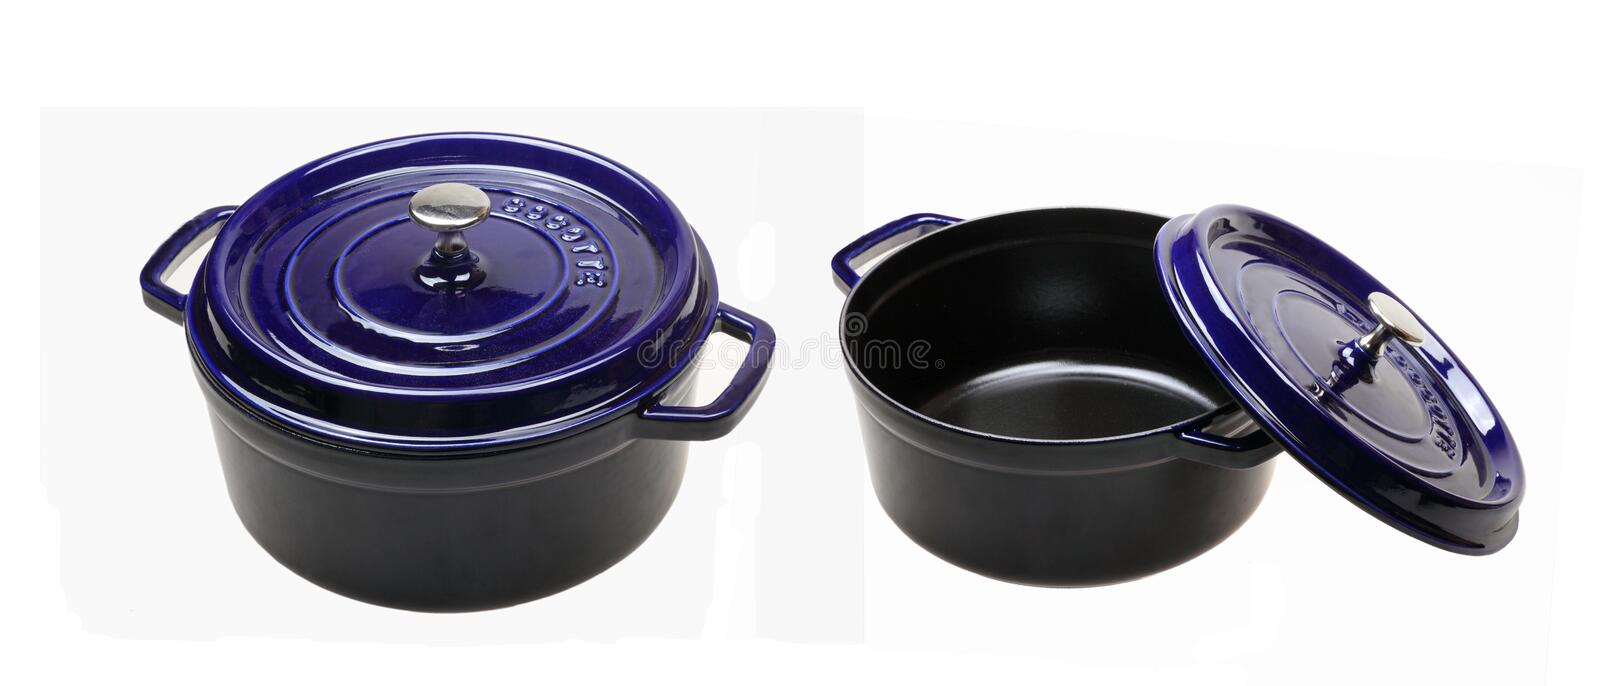 Download Enamel cast iron pan stock photo. Image of metal, cocotte - 26653084